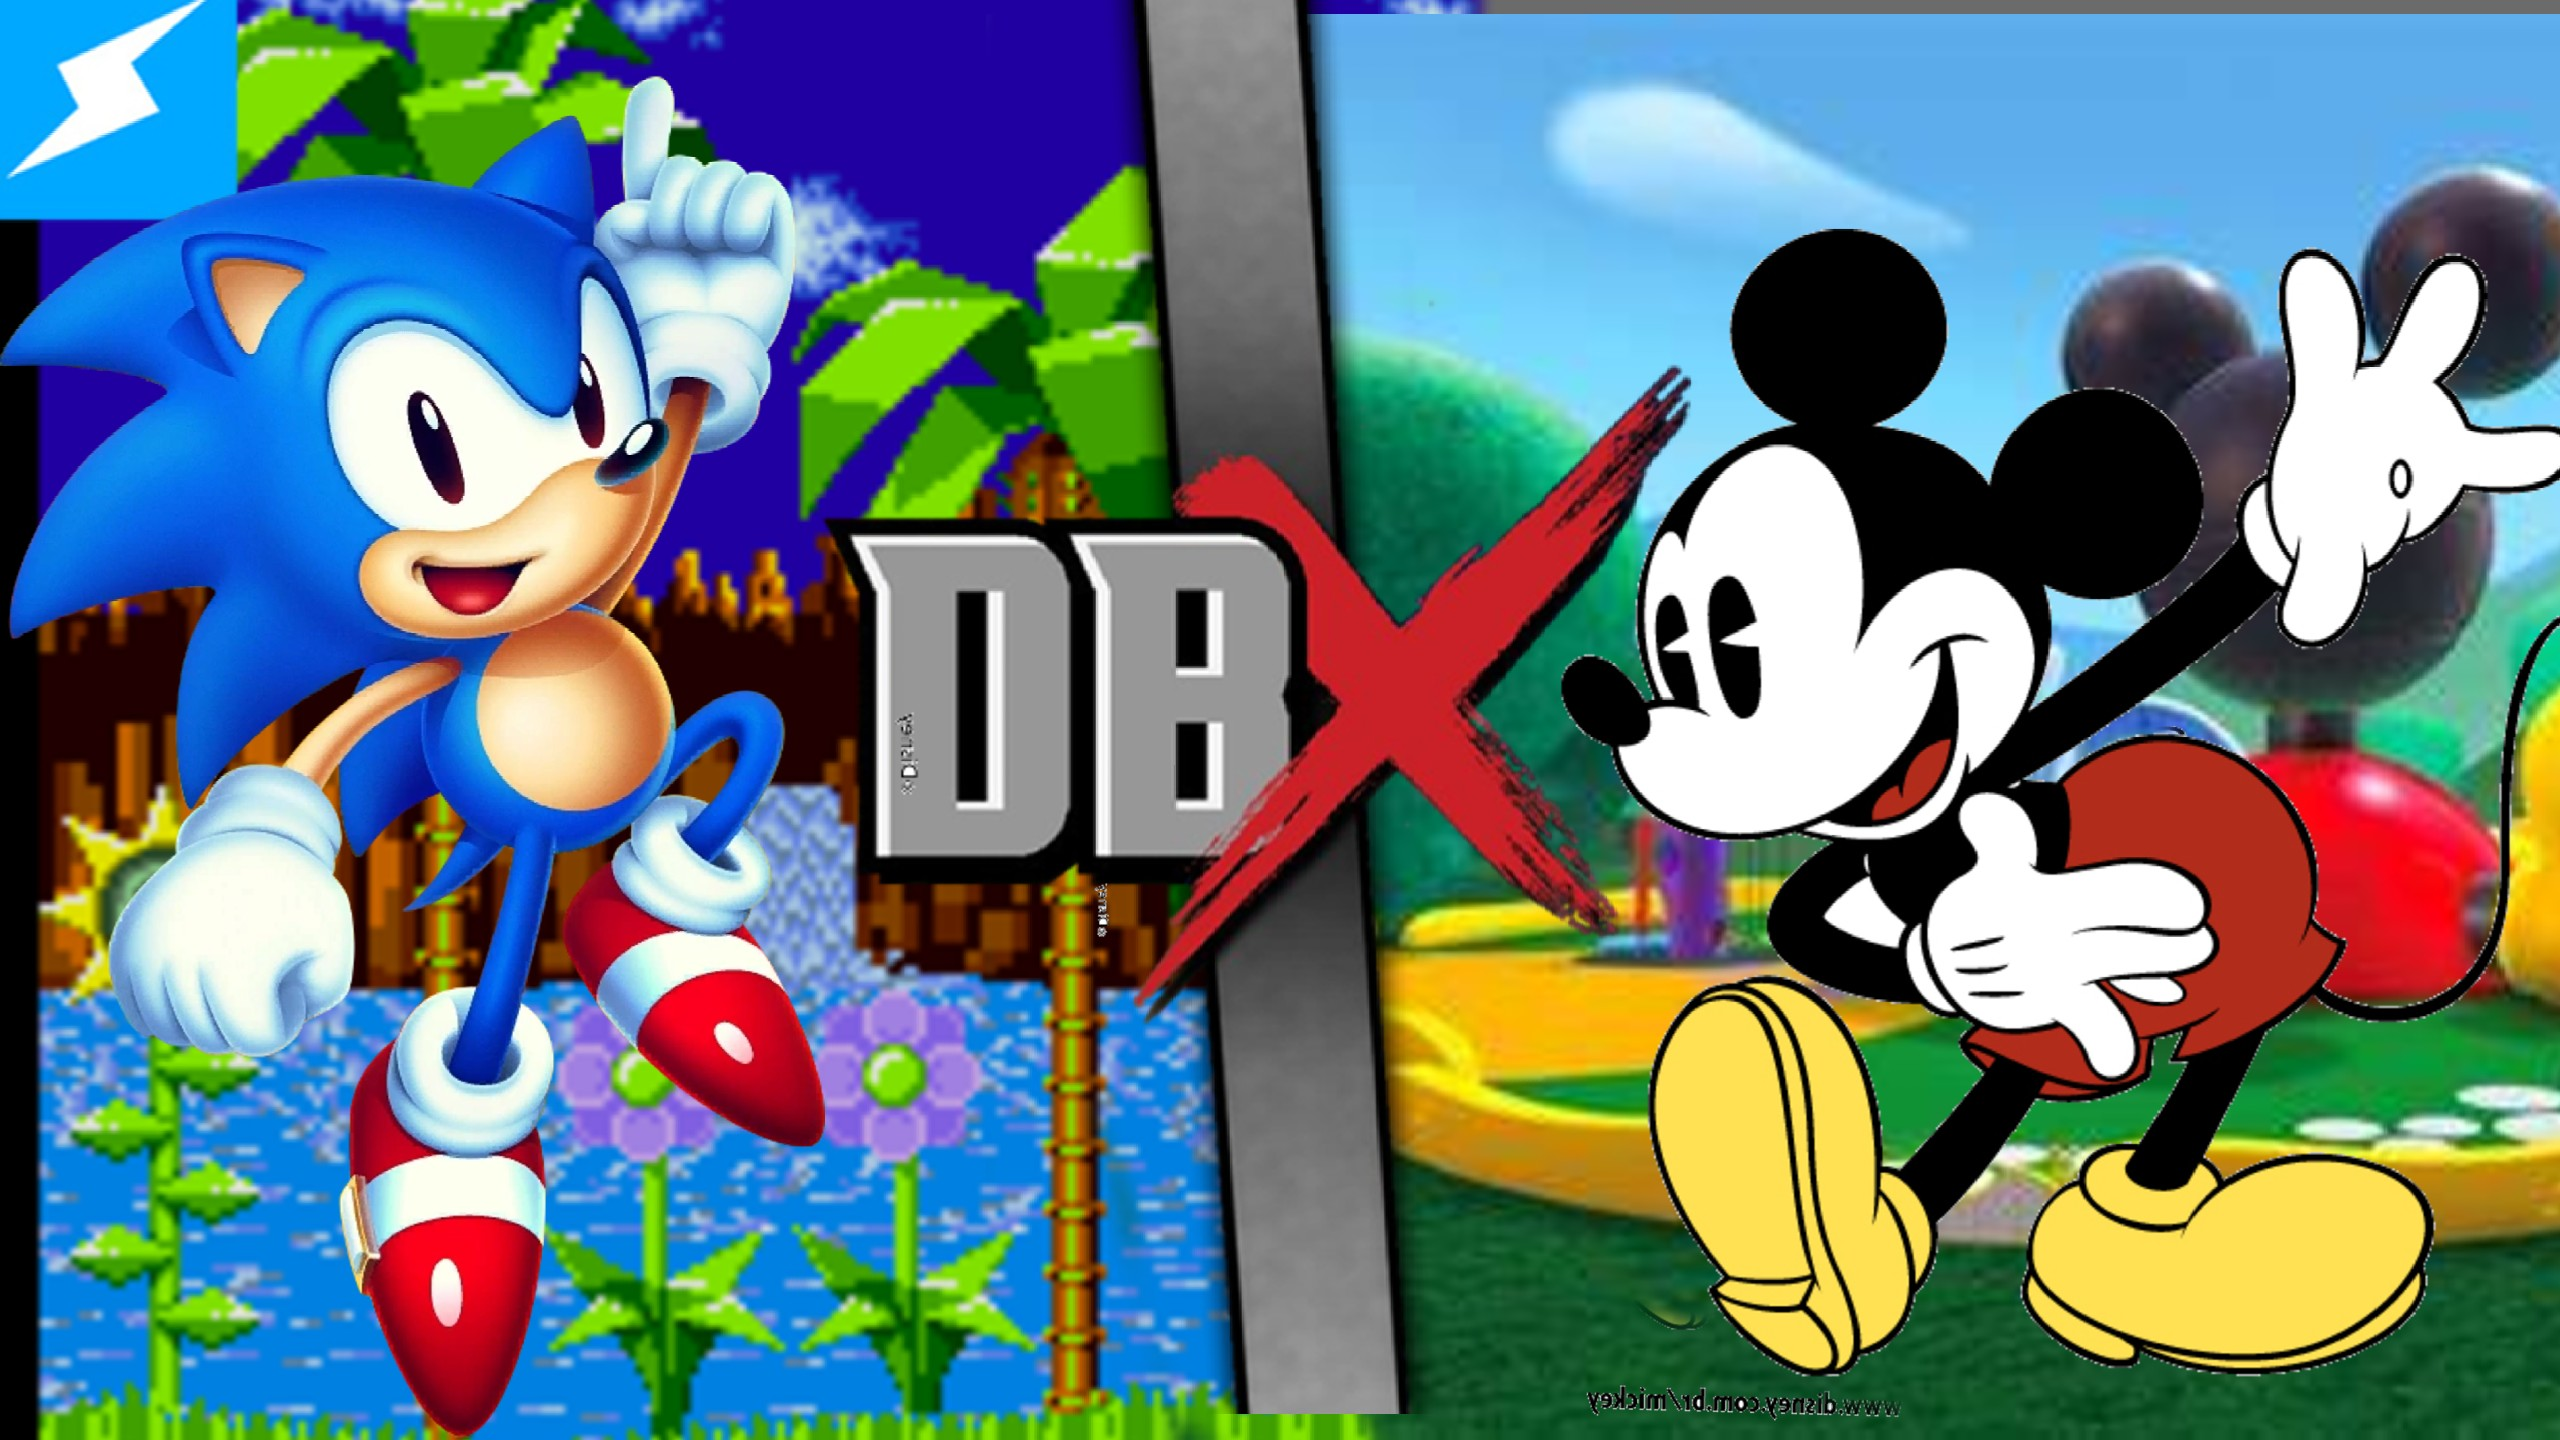 Sonic the Hedgehog vs. Mickey Mouse